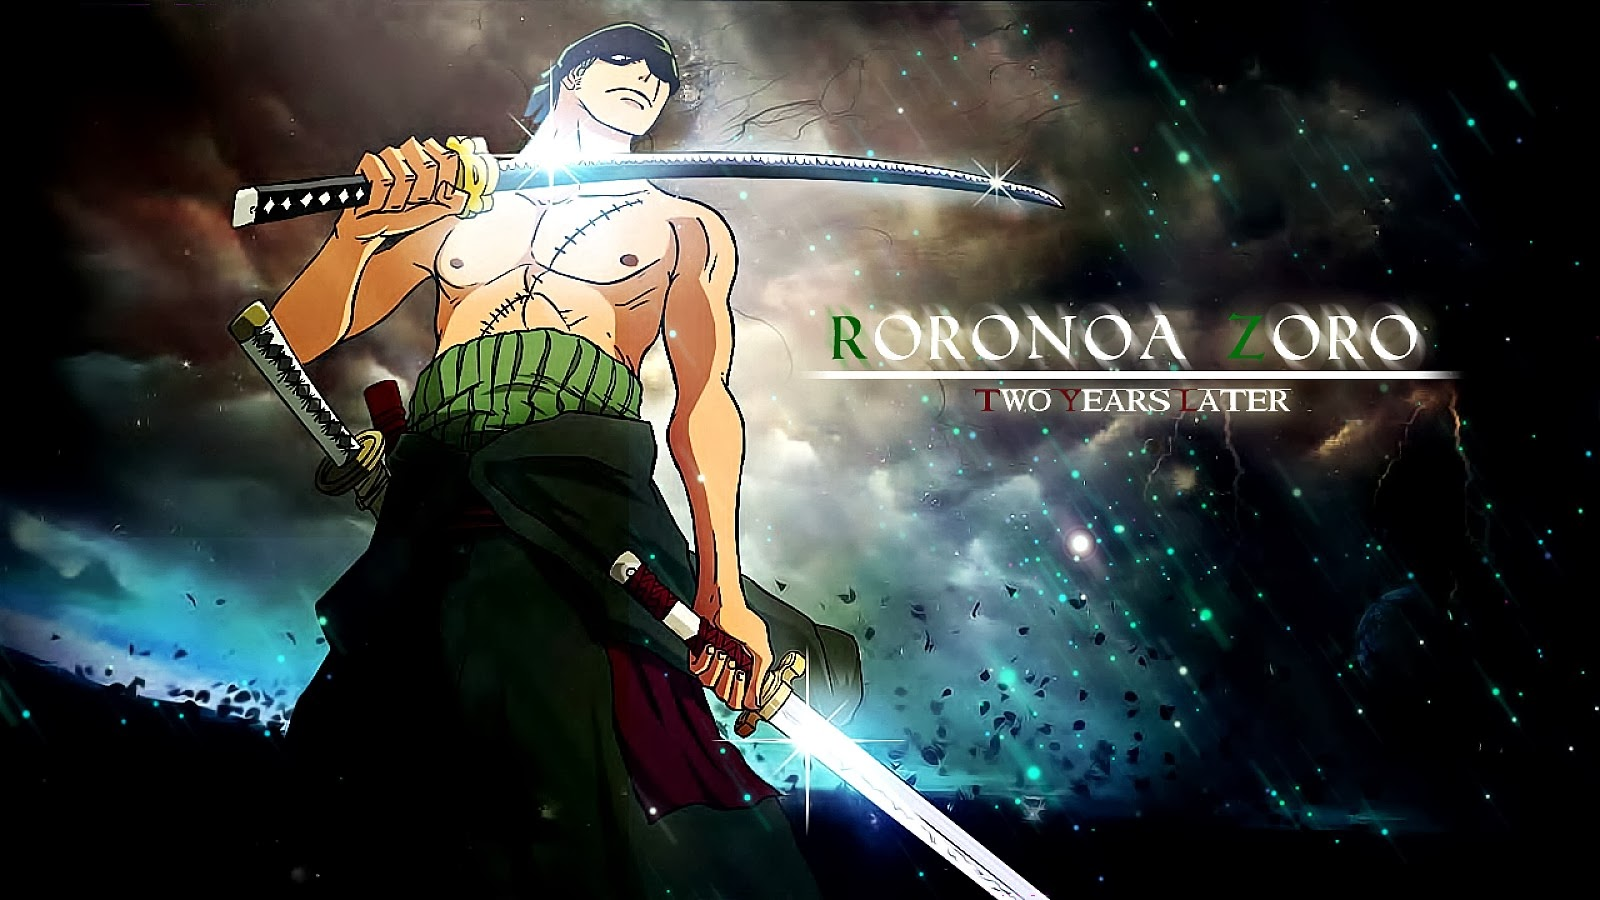 Cute Halloween Wallpapers For Android Roronoa Zoro Wallpapers Beauty Walpaper